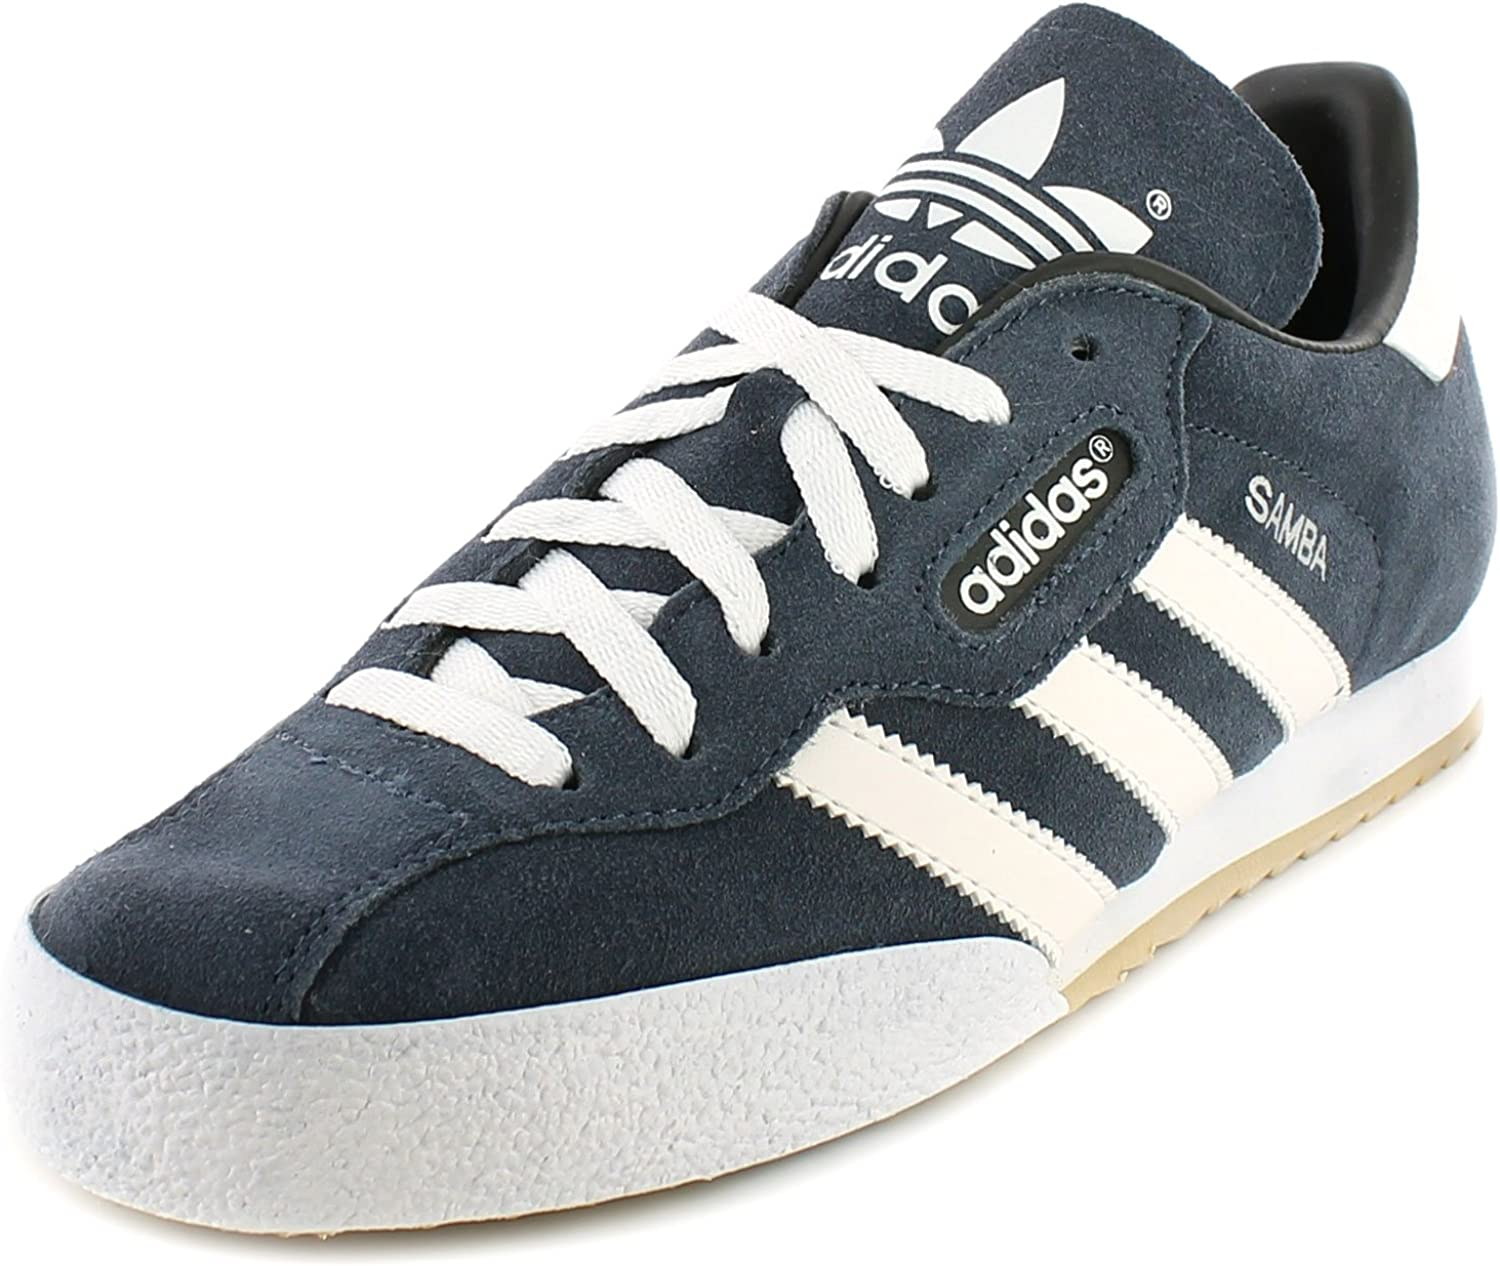 Adidas Originals Samba Super Mens Other Leather Material Running Trainers Navy Suede White